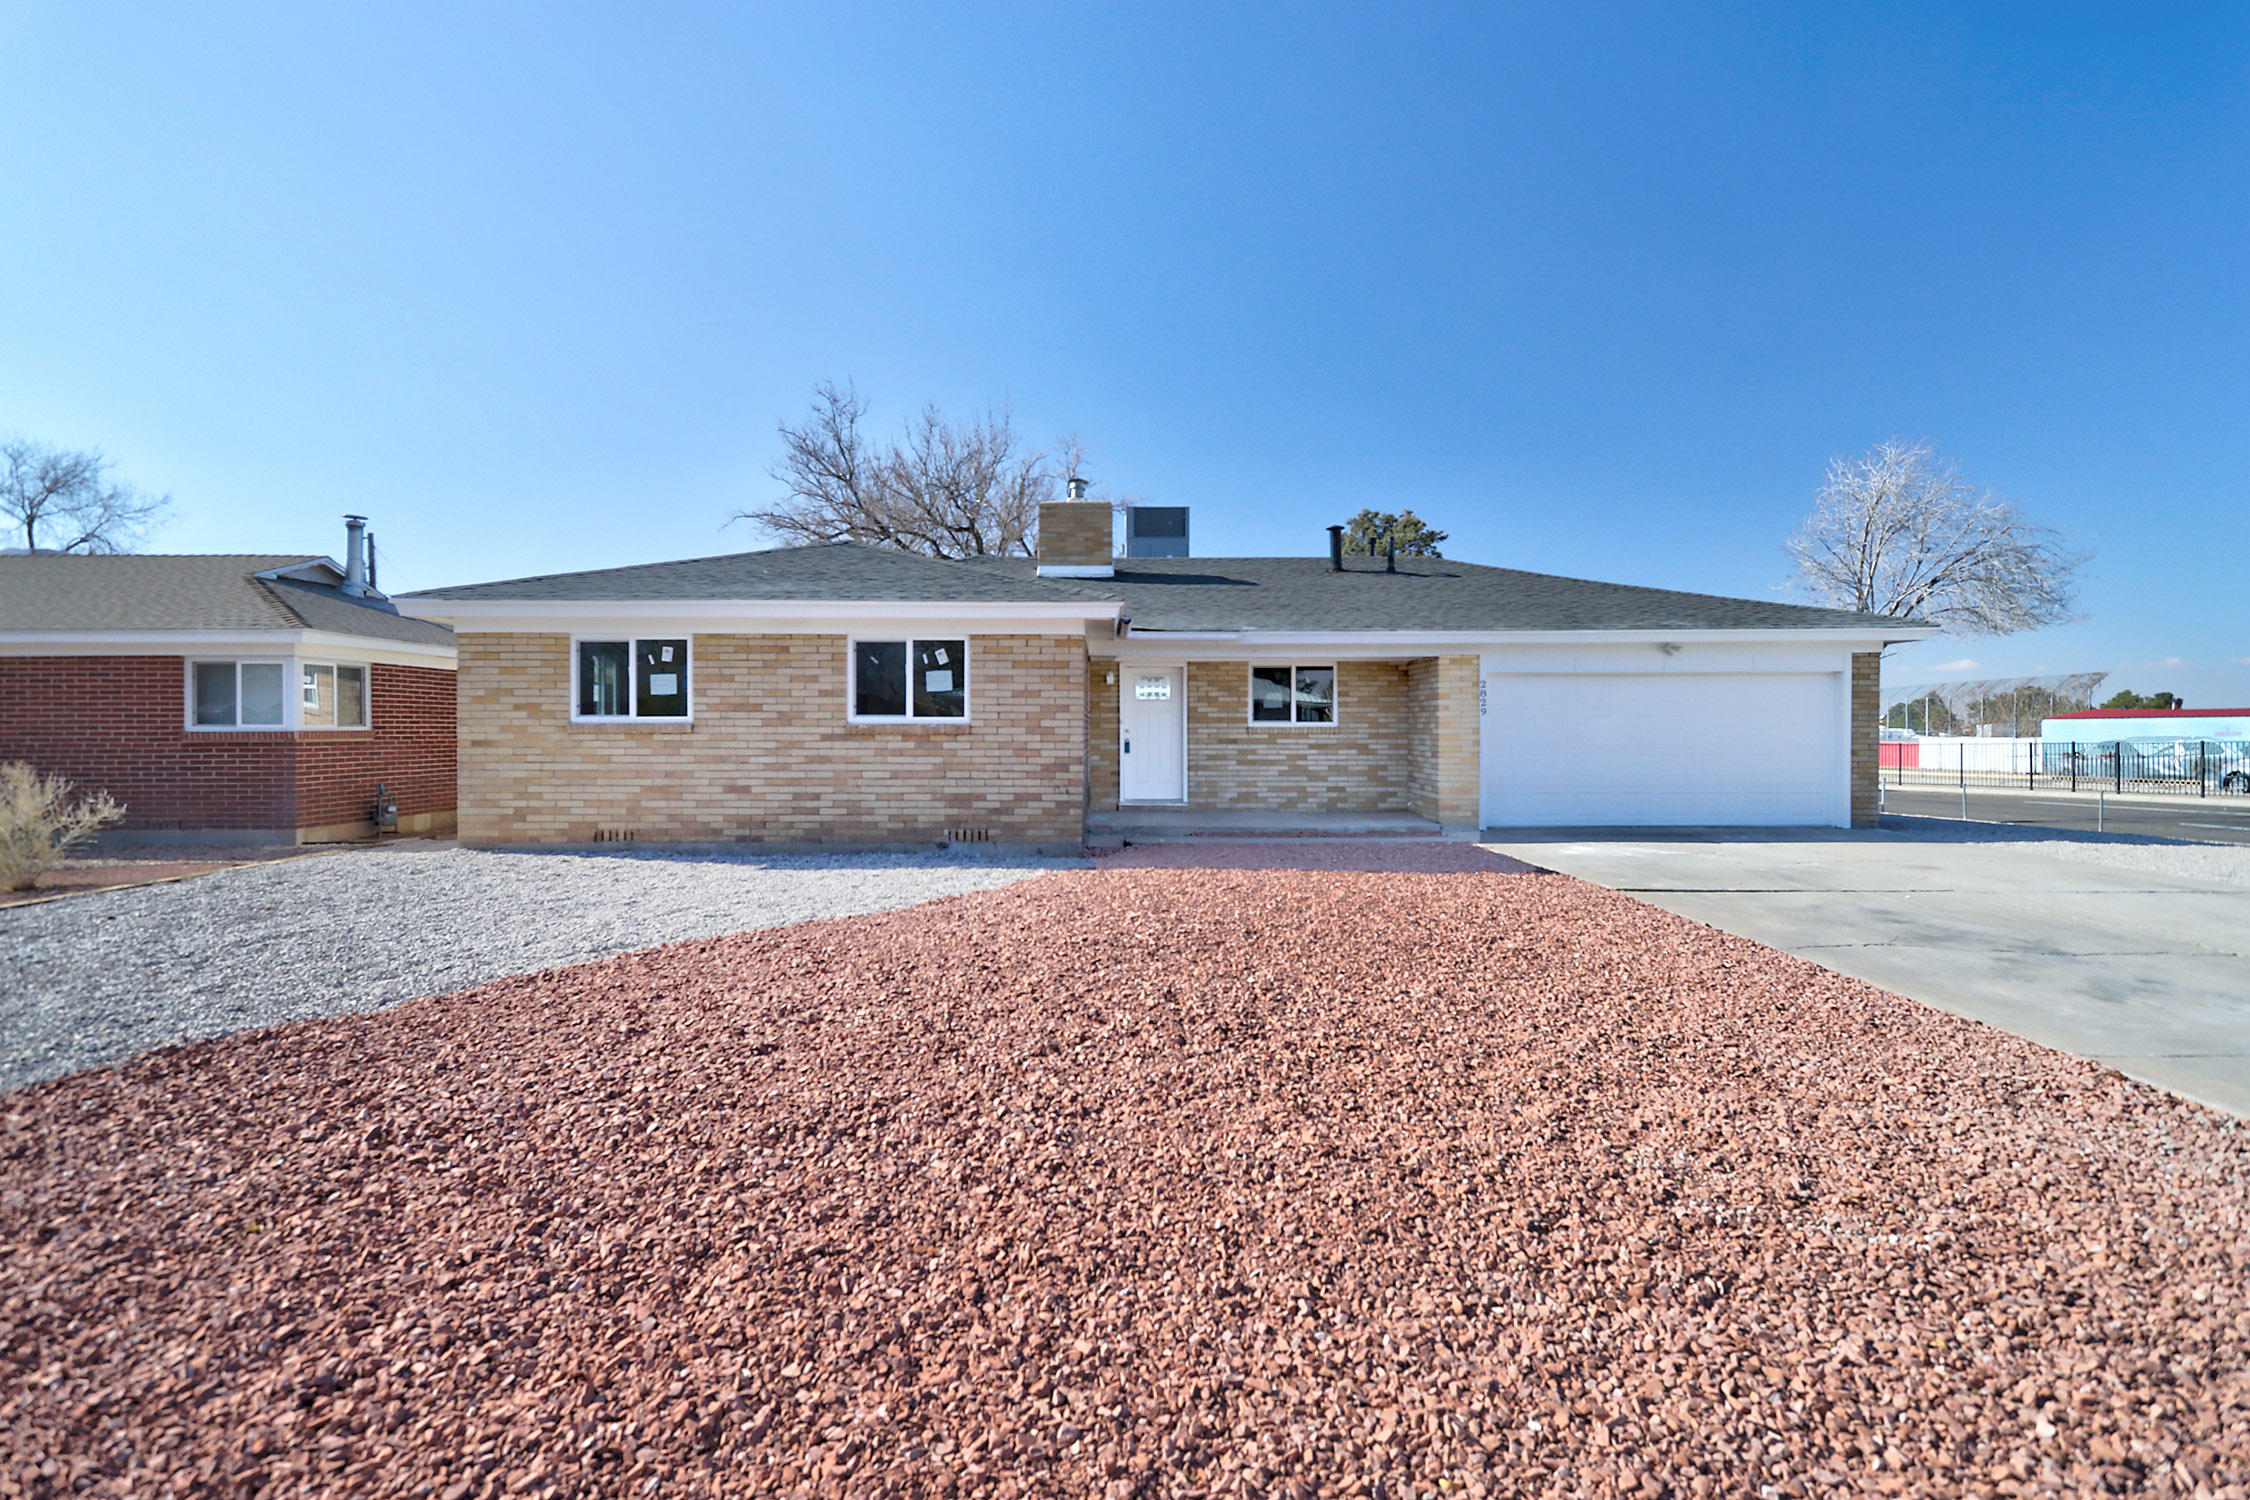 Move in Ready.  Great Remodel in Sandia school district.   New Roof, New Refrigerated air combo unit, New granite, new kitchen cabinets, new carpet, new paint, new tile, new water heater, new garage door opener, new stainless steel appliances, new windows, new fixtures.  open floor plan.  Back Yard Access.